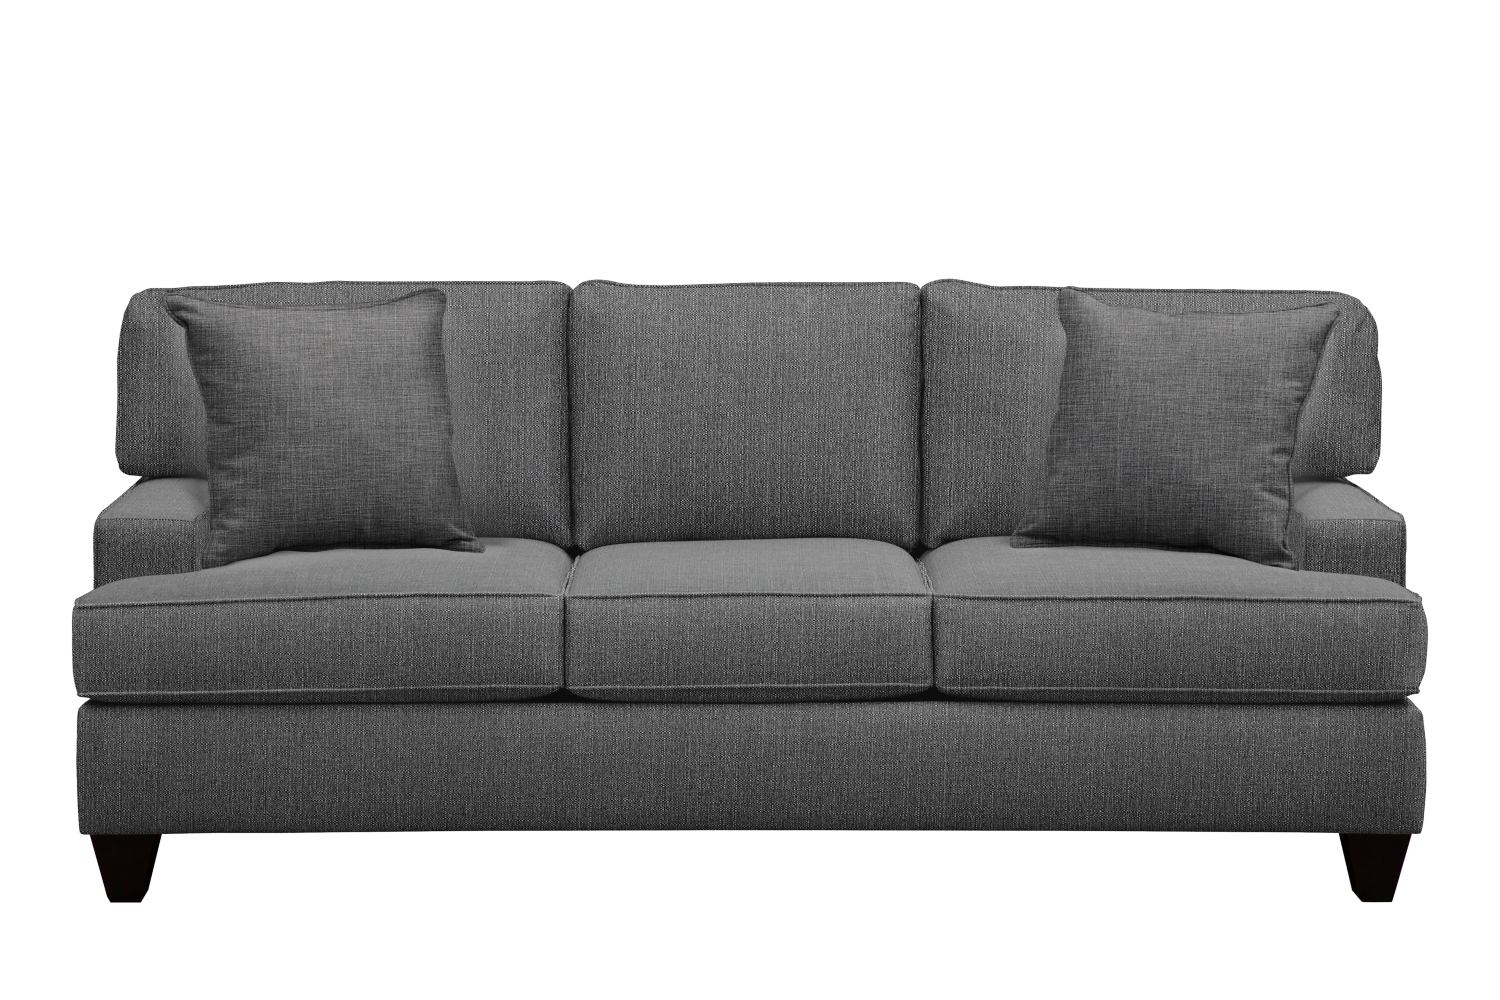 "Conner Track Arm Sofa 87"" Depalma Charcoal w/ Depalma Charcoal Pillow"